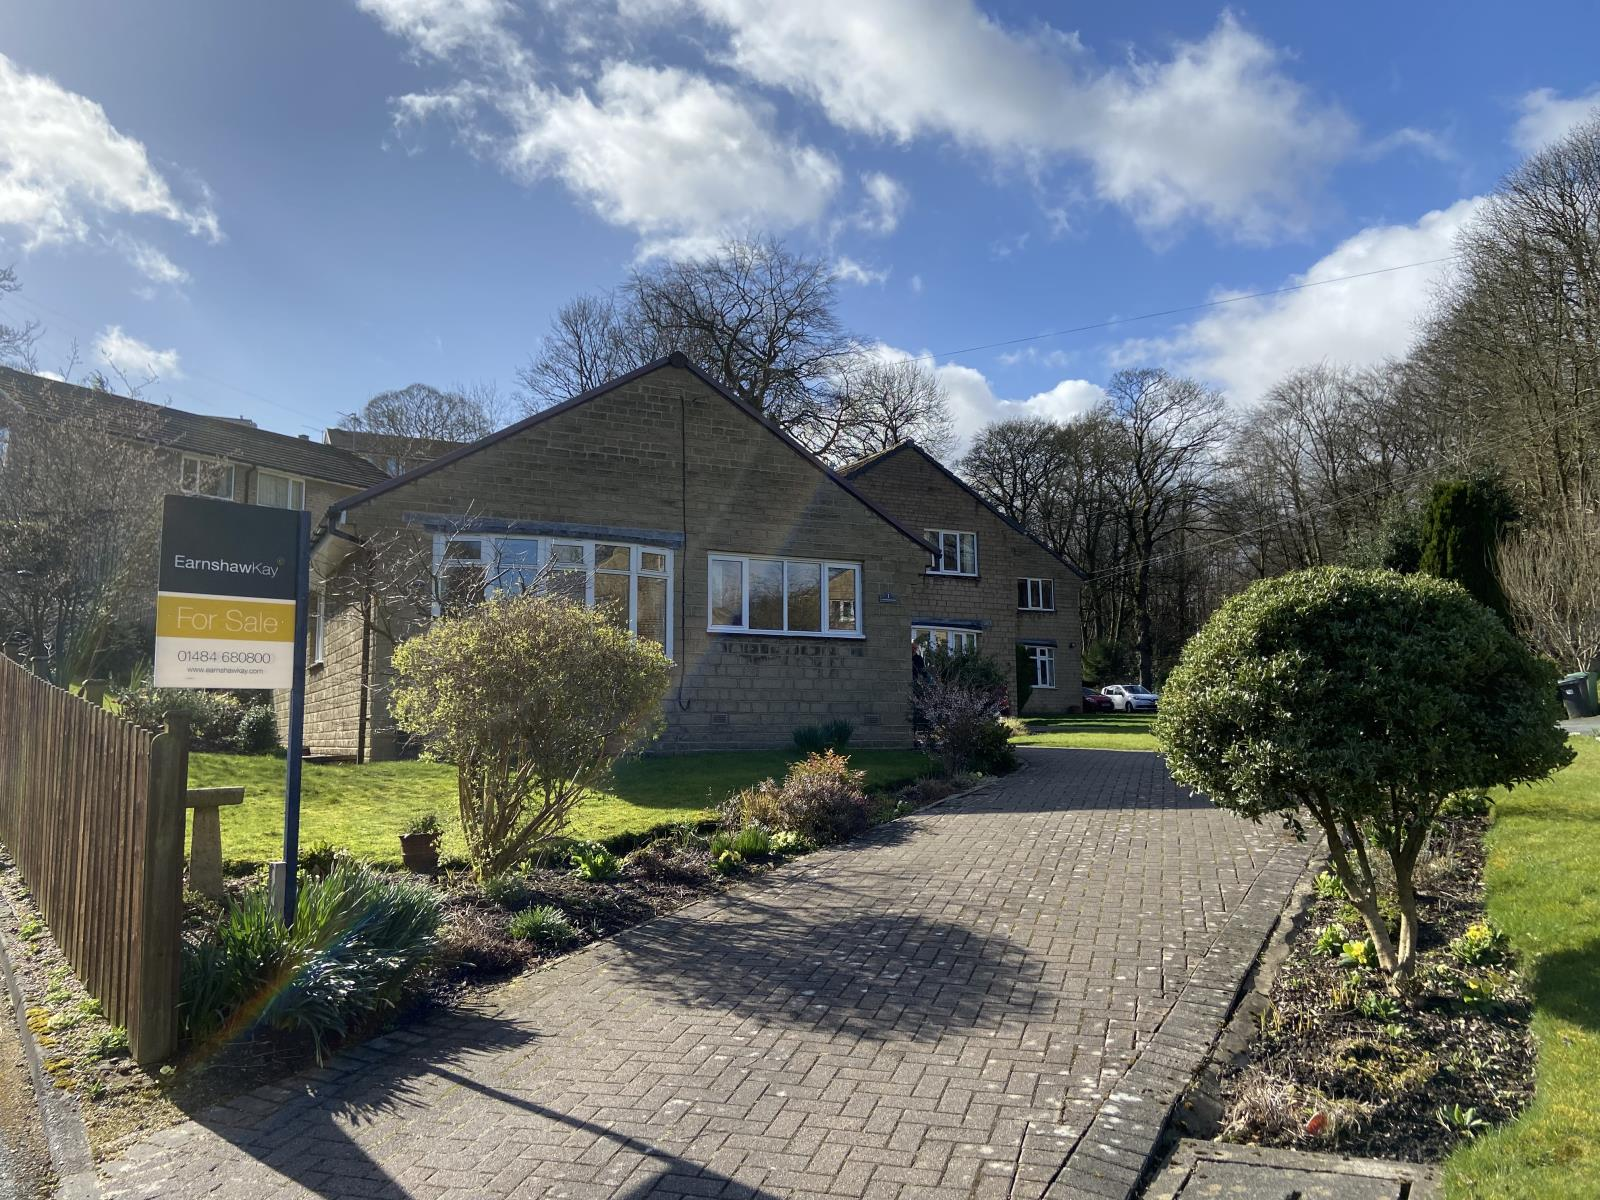 1 Lingwood Close, New Mill, Holmfirth, HD9 7NN